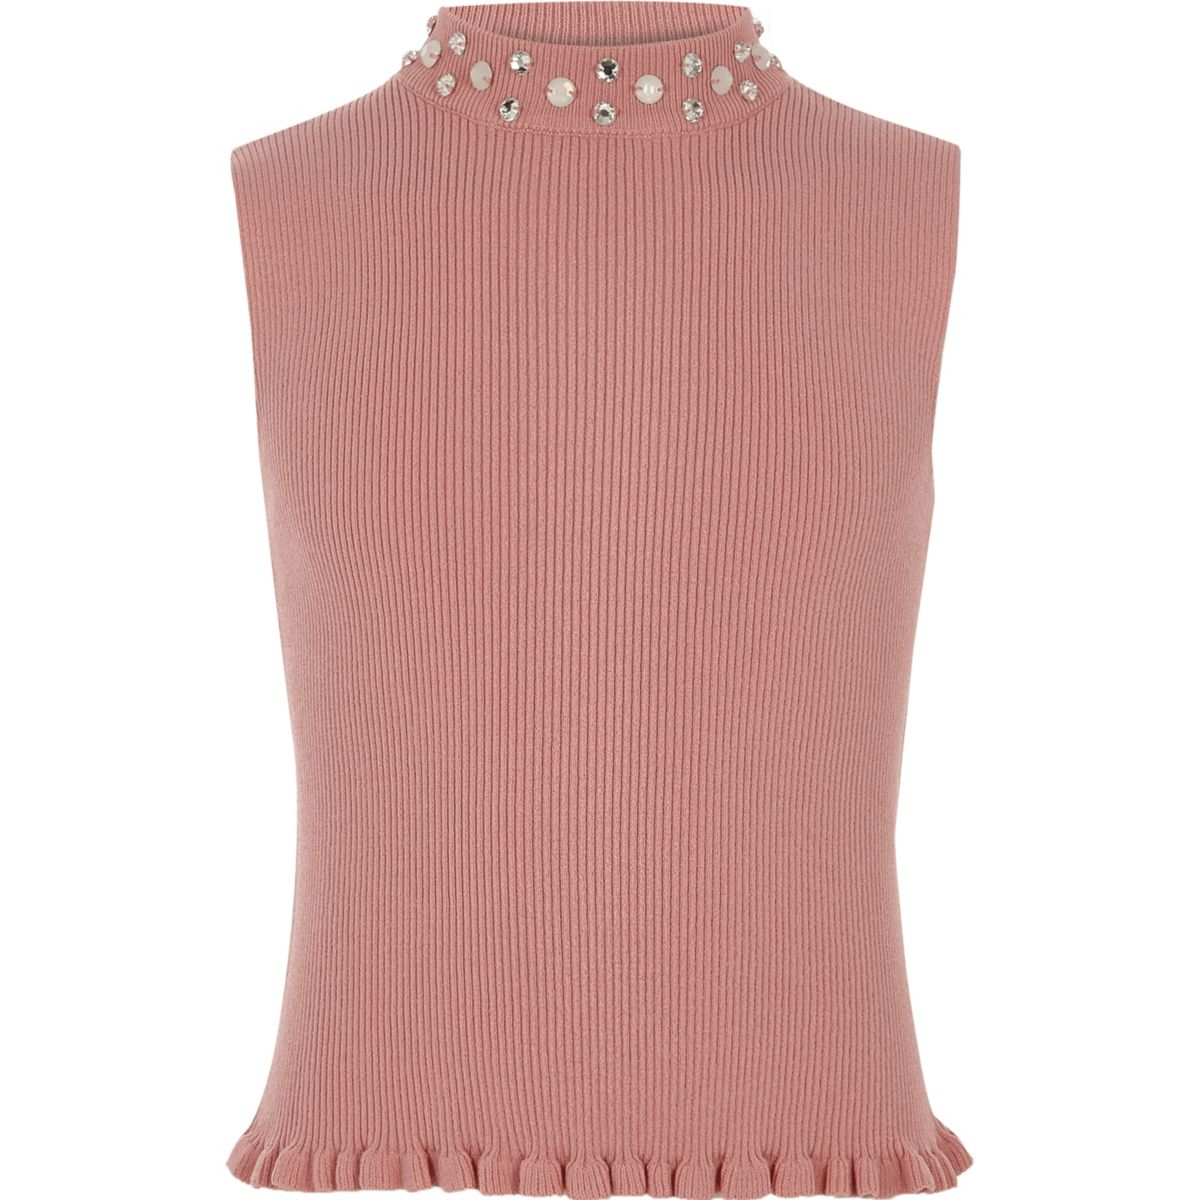 Girls pink rib knit embellished tank top